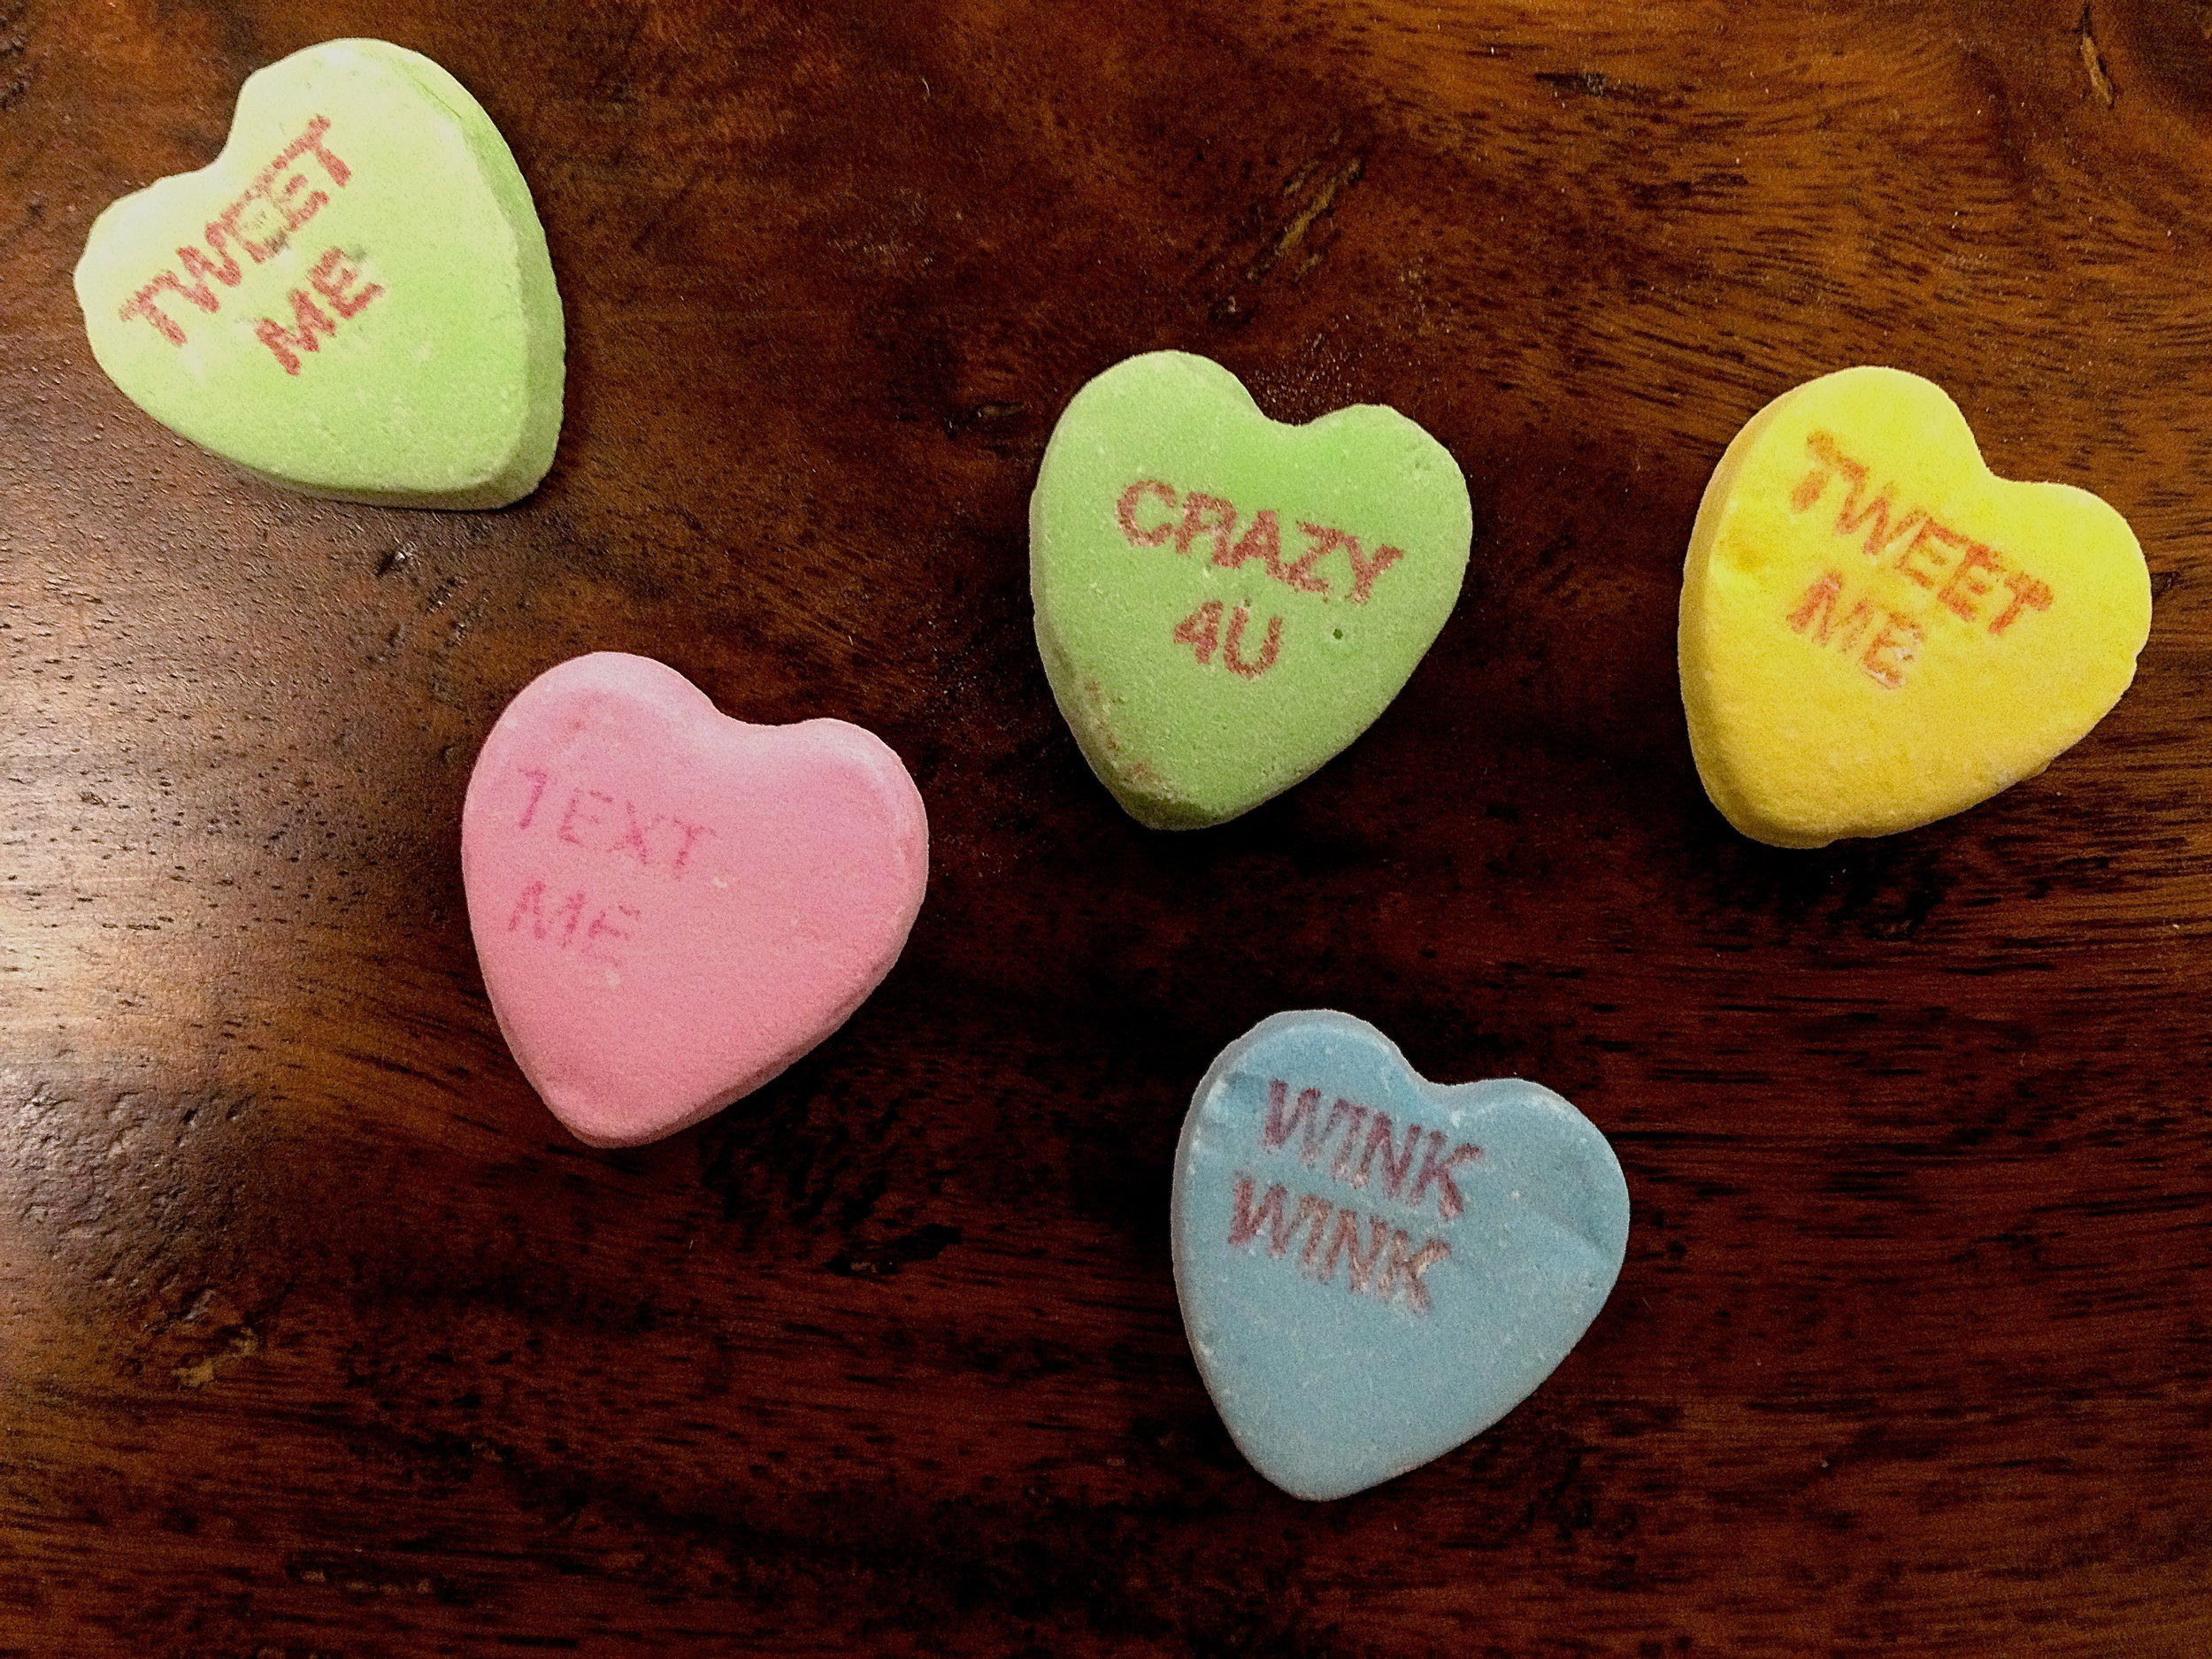 The start of Valentine's Day -- copious amounts of candy hearts.